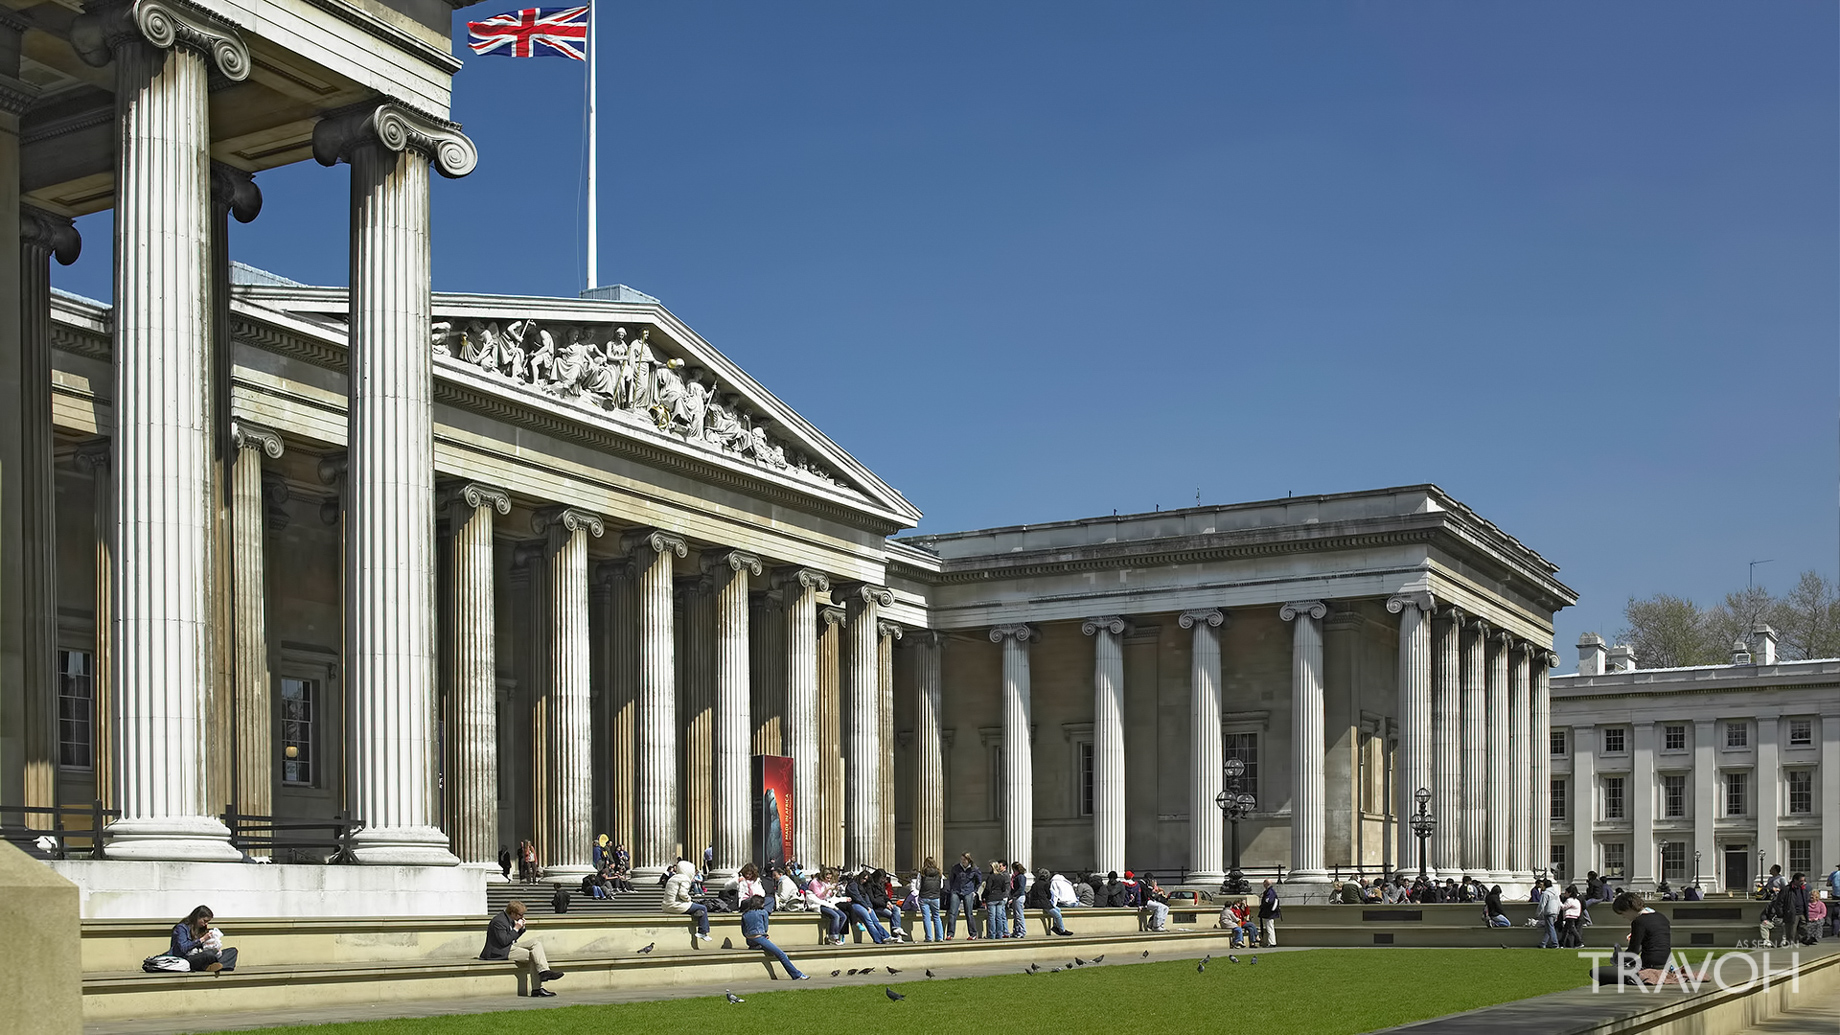 The British Museum - Great Russell St, Bloomsbury, London, United Kingdom